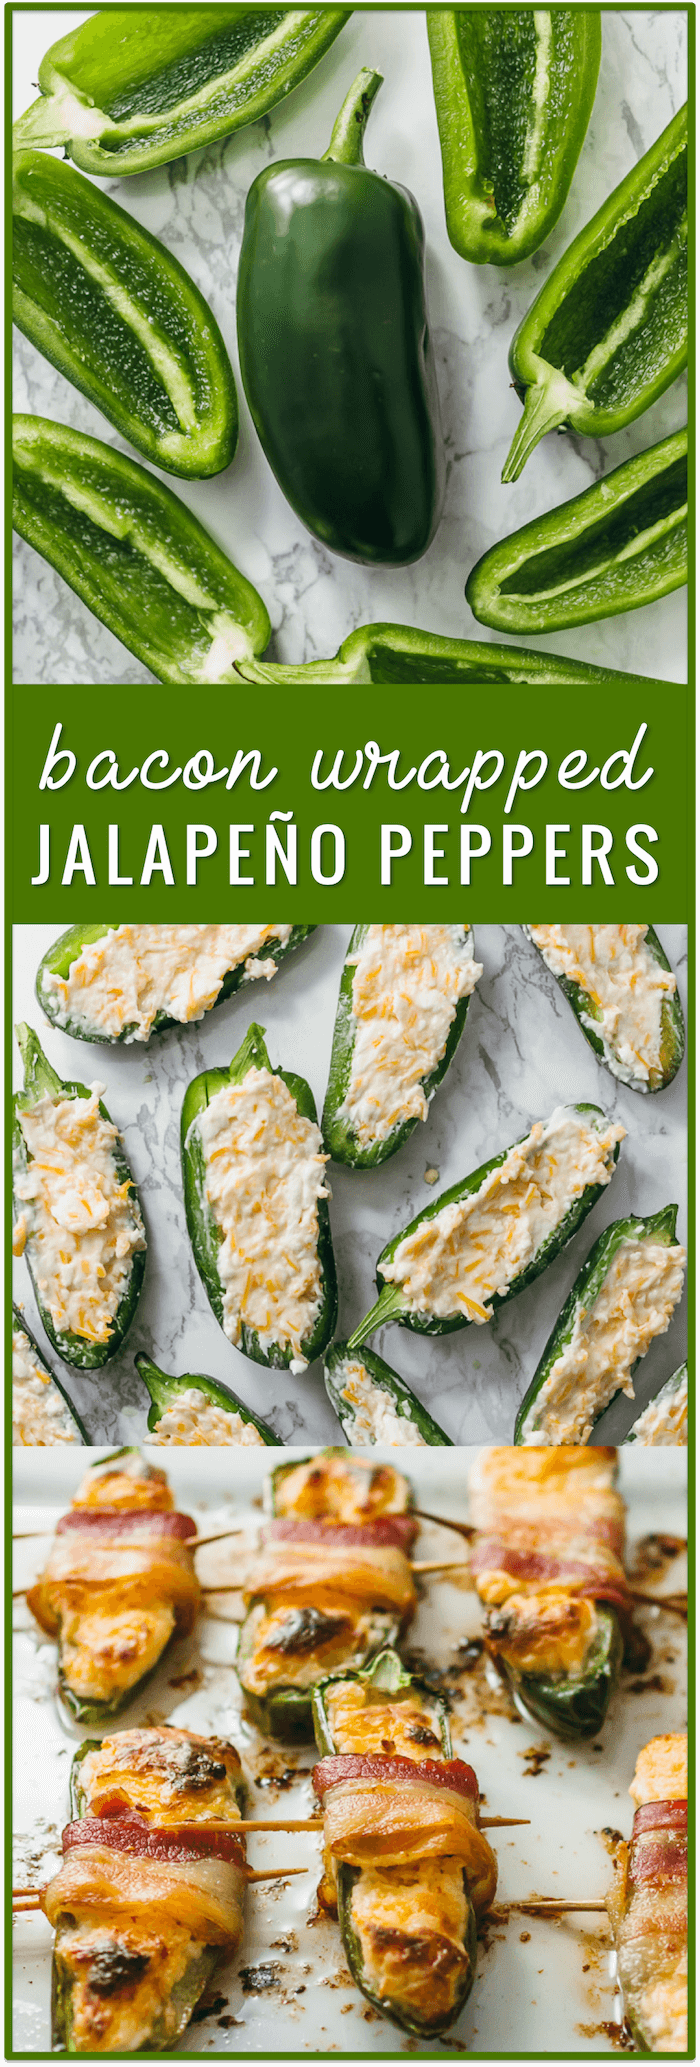 bacon wrapped jalapeño peppers, baked jalapeno poppers, cream cheese jalapeno poppers, fried jalapeno poppers, cream cheese stuffed jalapenos, recipe, grilled, dip, with sausage, easy, simple, fast, wrapped in bacon, biscuits, healthy, chicken